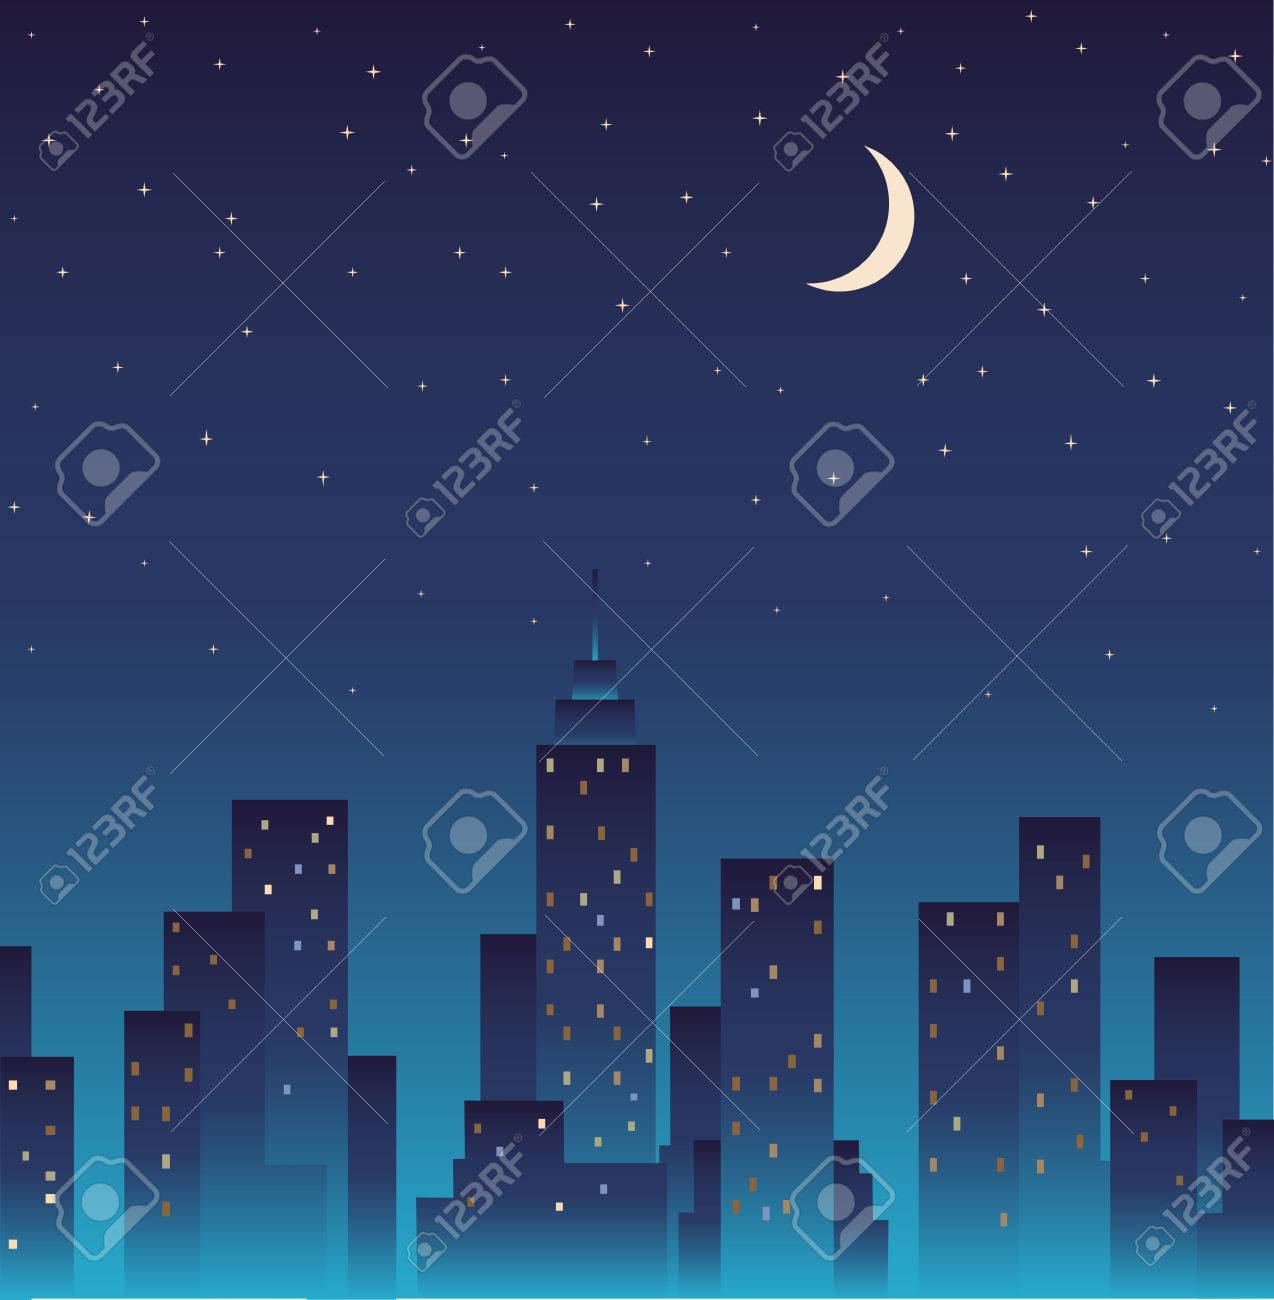 Silhouette of the city and night with stars and moon at the sky. - 31104751